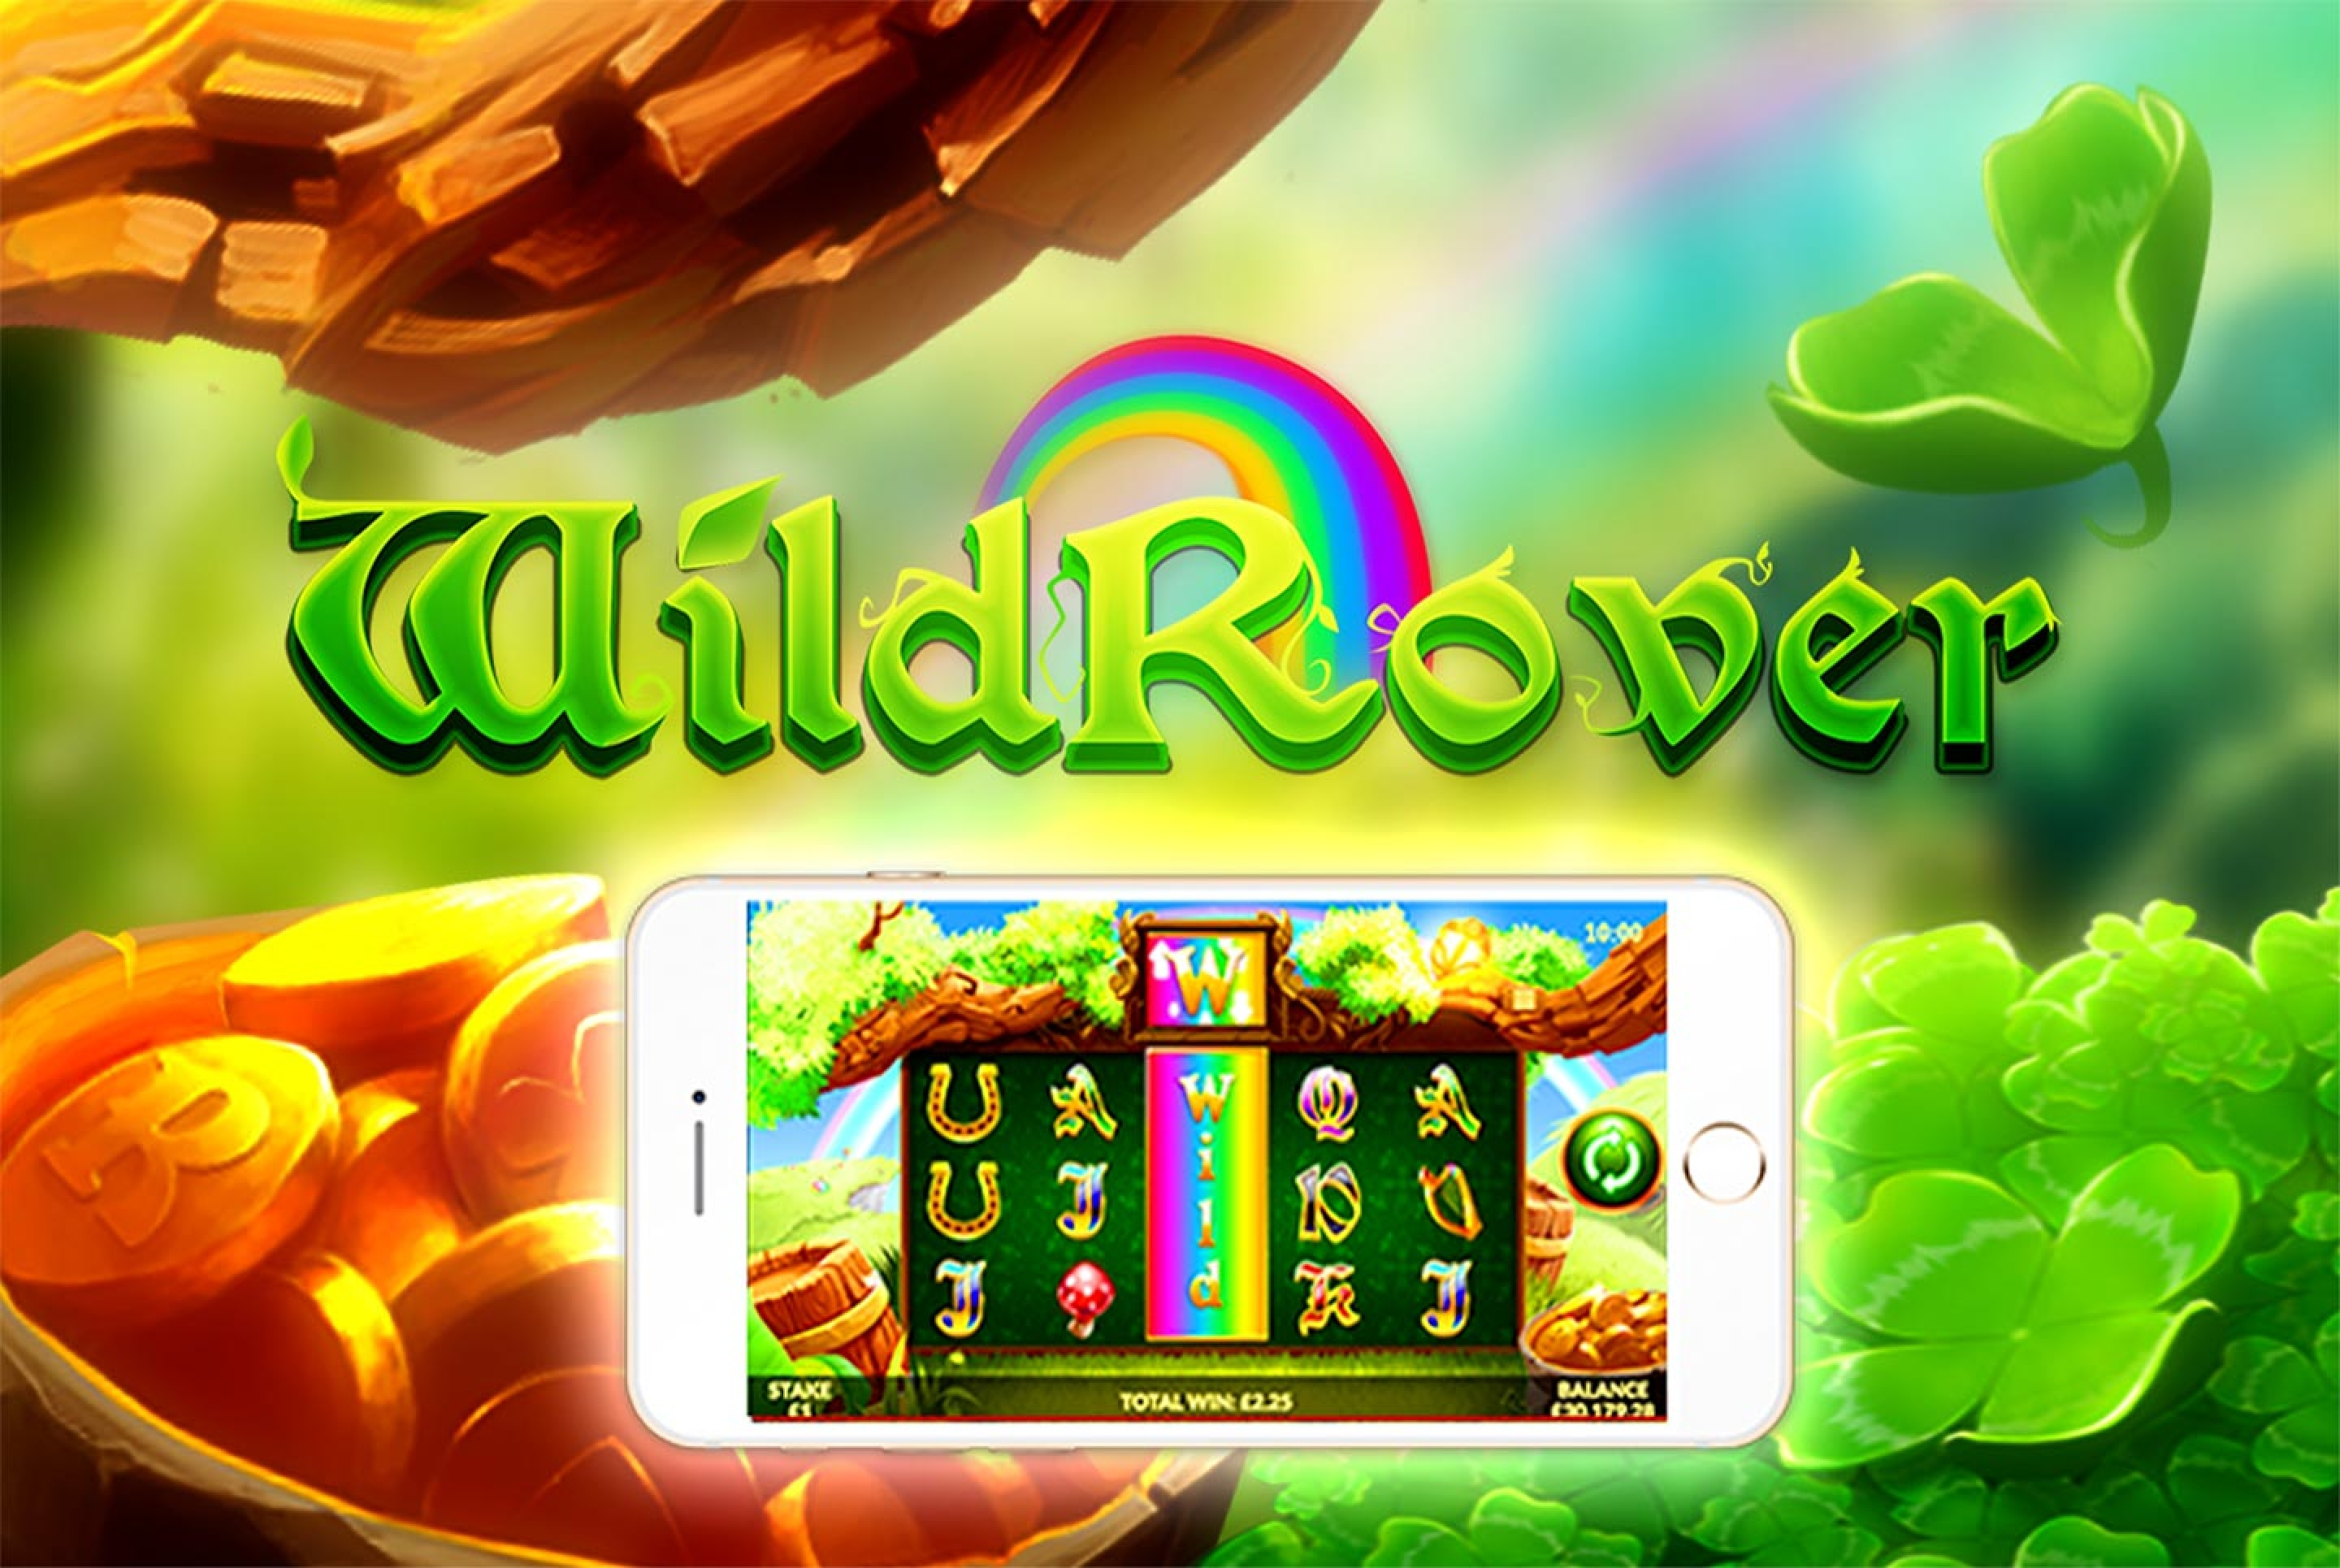 The Wild Rover Online Slot Demo Game by Slingo